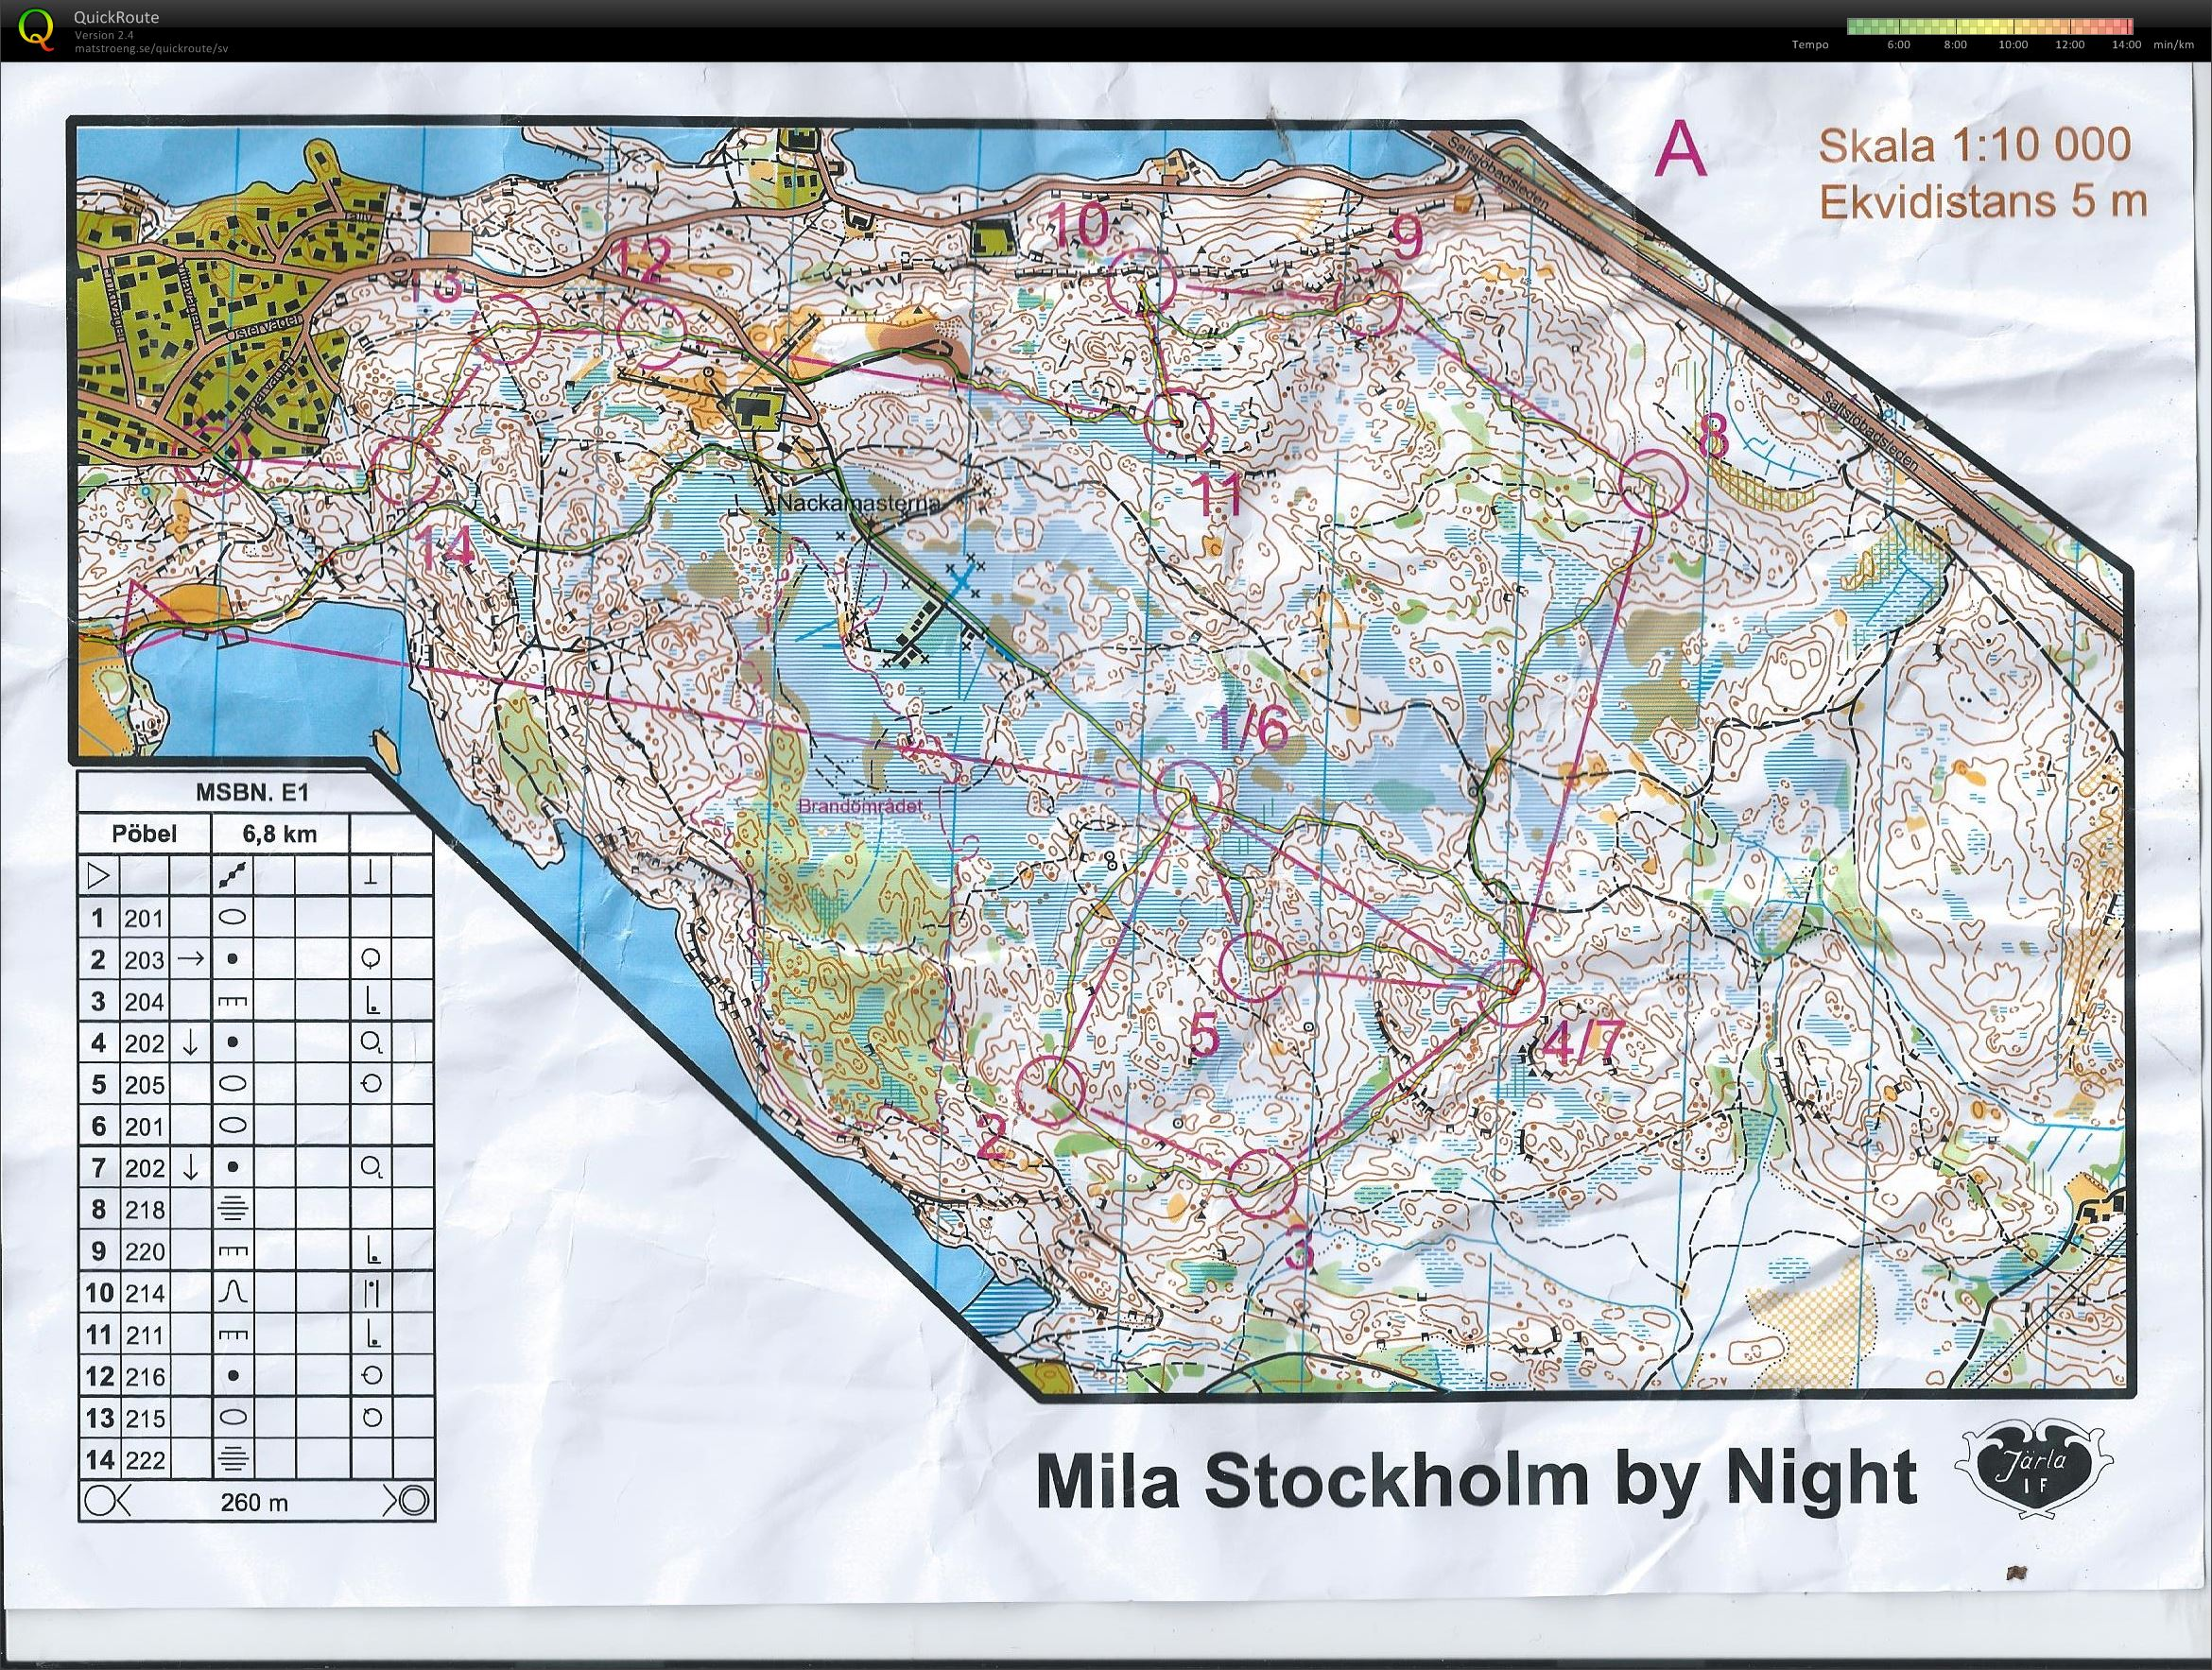 Mila by night etapp 1 (2014-11-12)